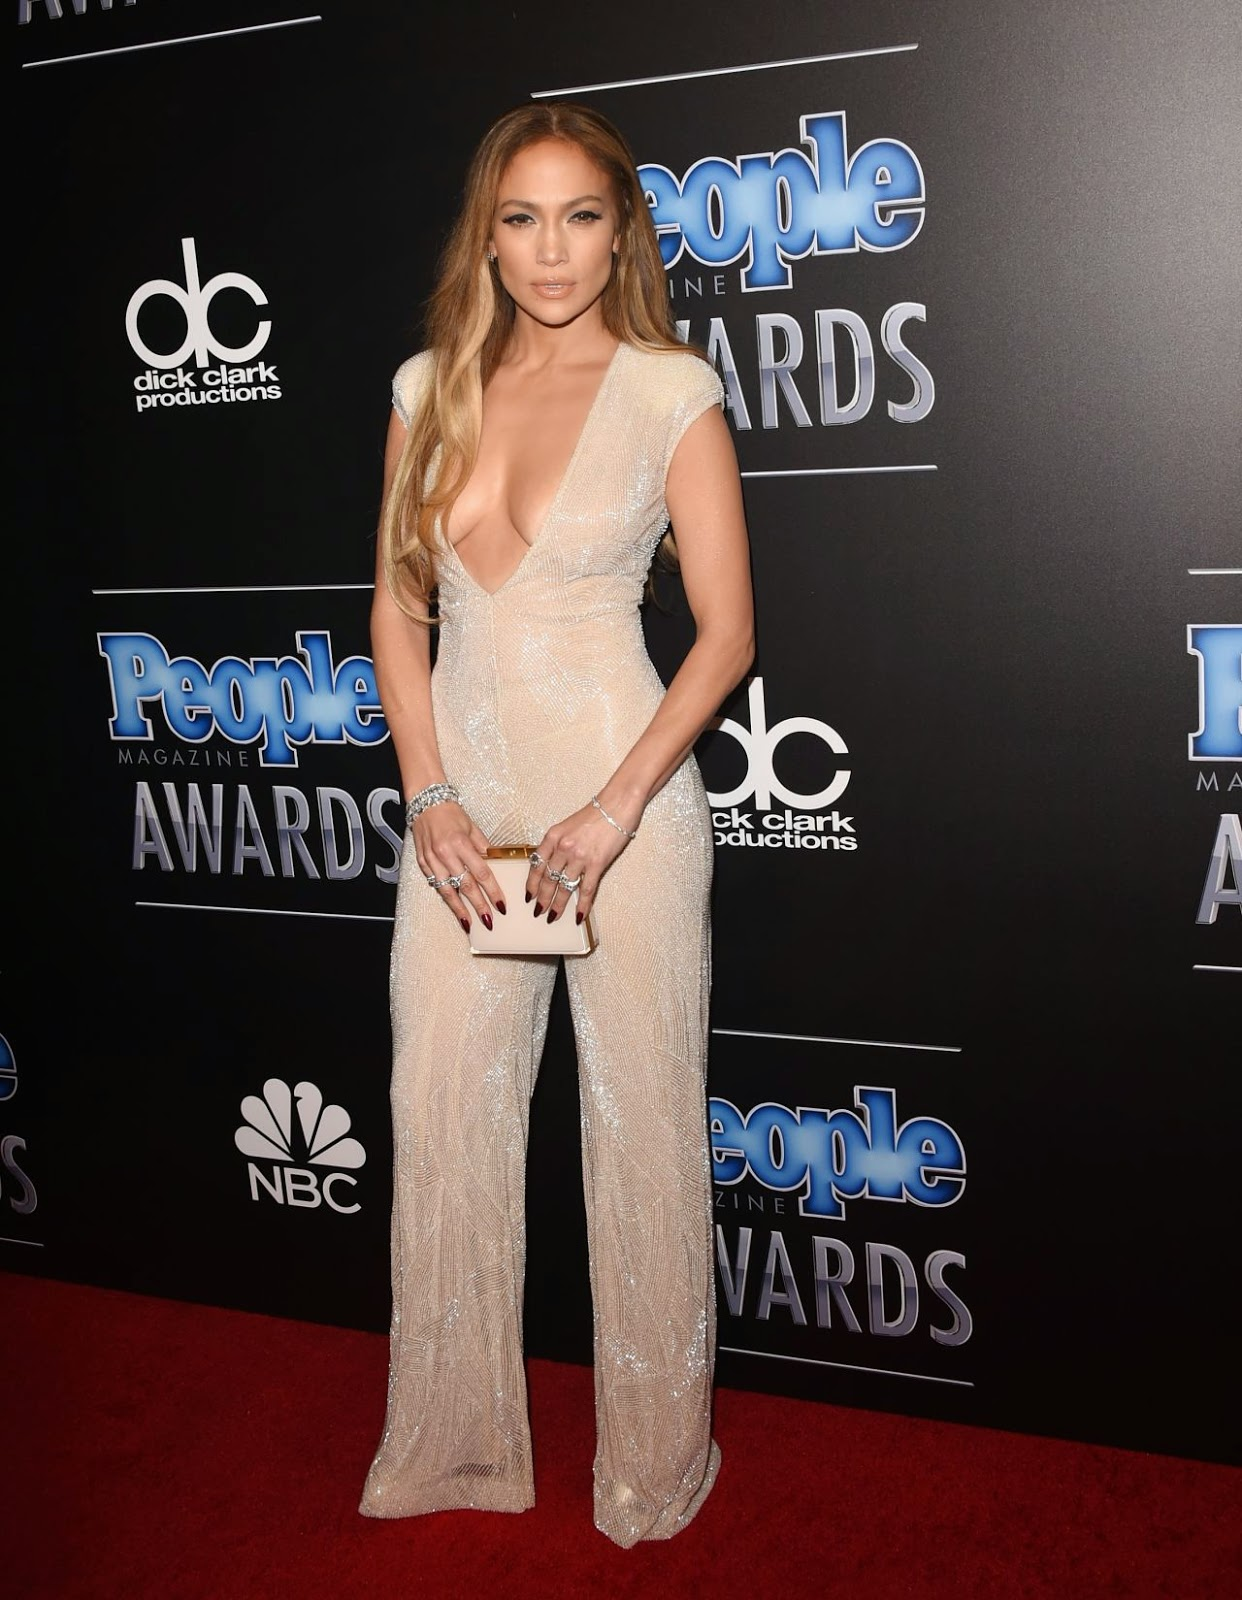 Jennifer Lopez wears a sexy plunging jumpsuit at the 2014 People Magazine Awards